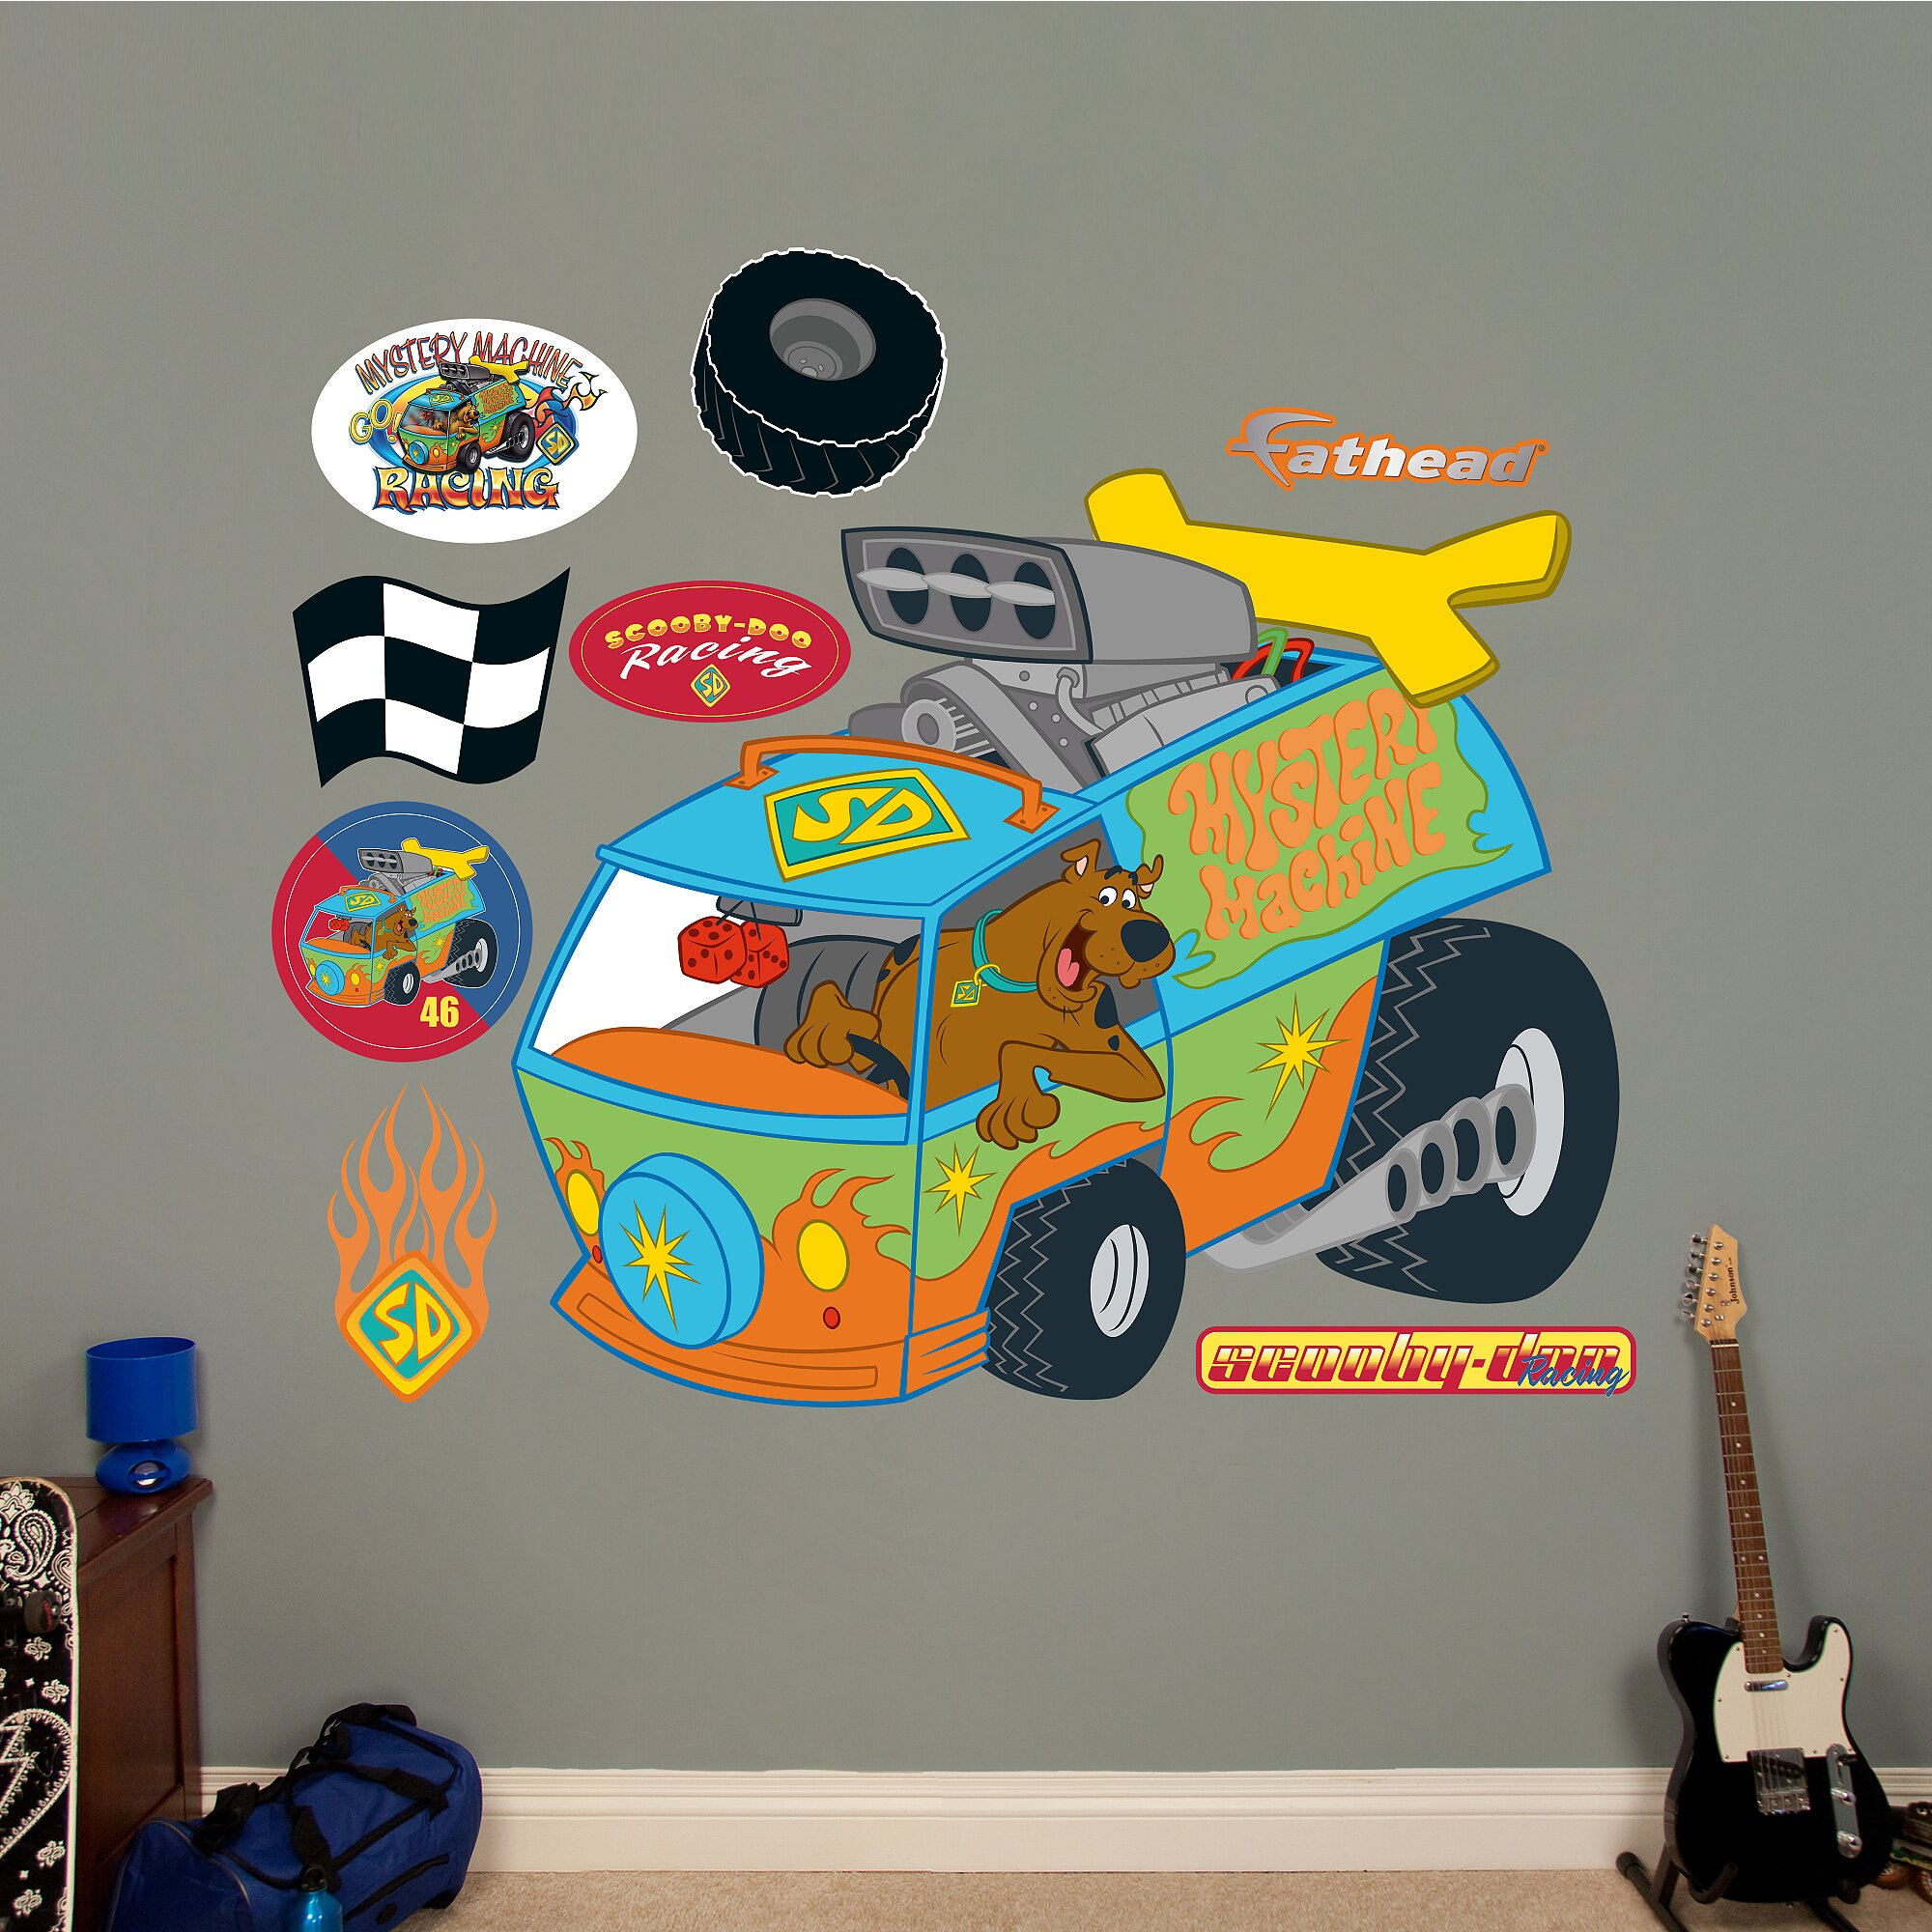 Scooby Doo Wall Stickers Warner Bros Scooby Doo Hot Rod Machine Peel And Stick Wall